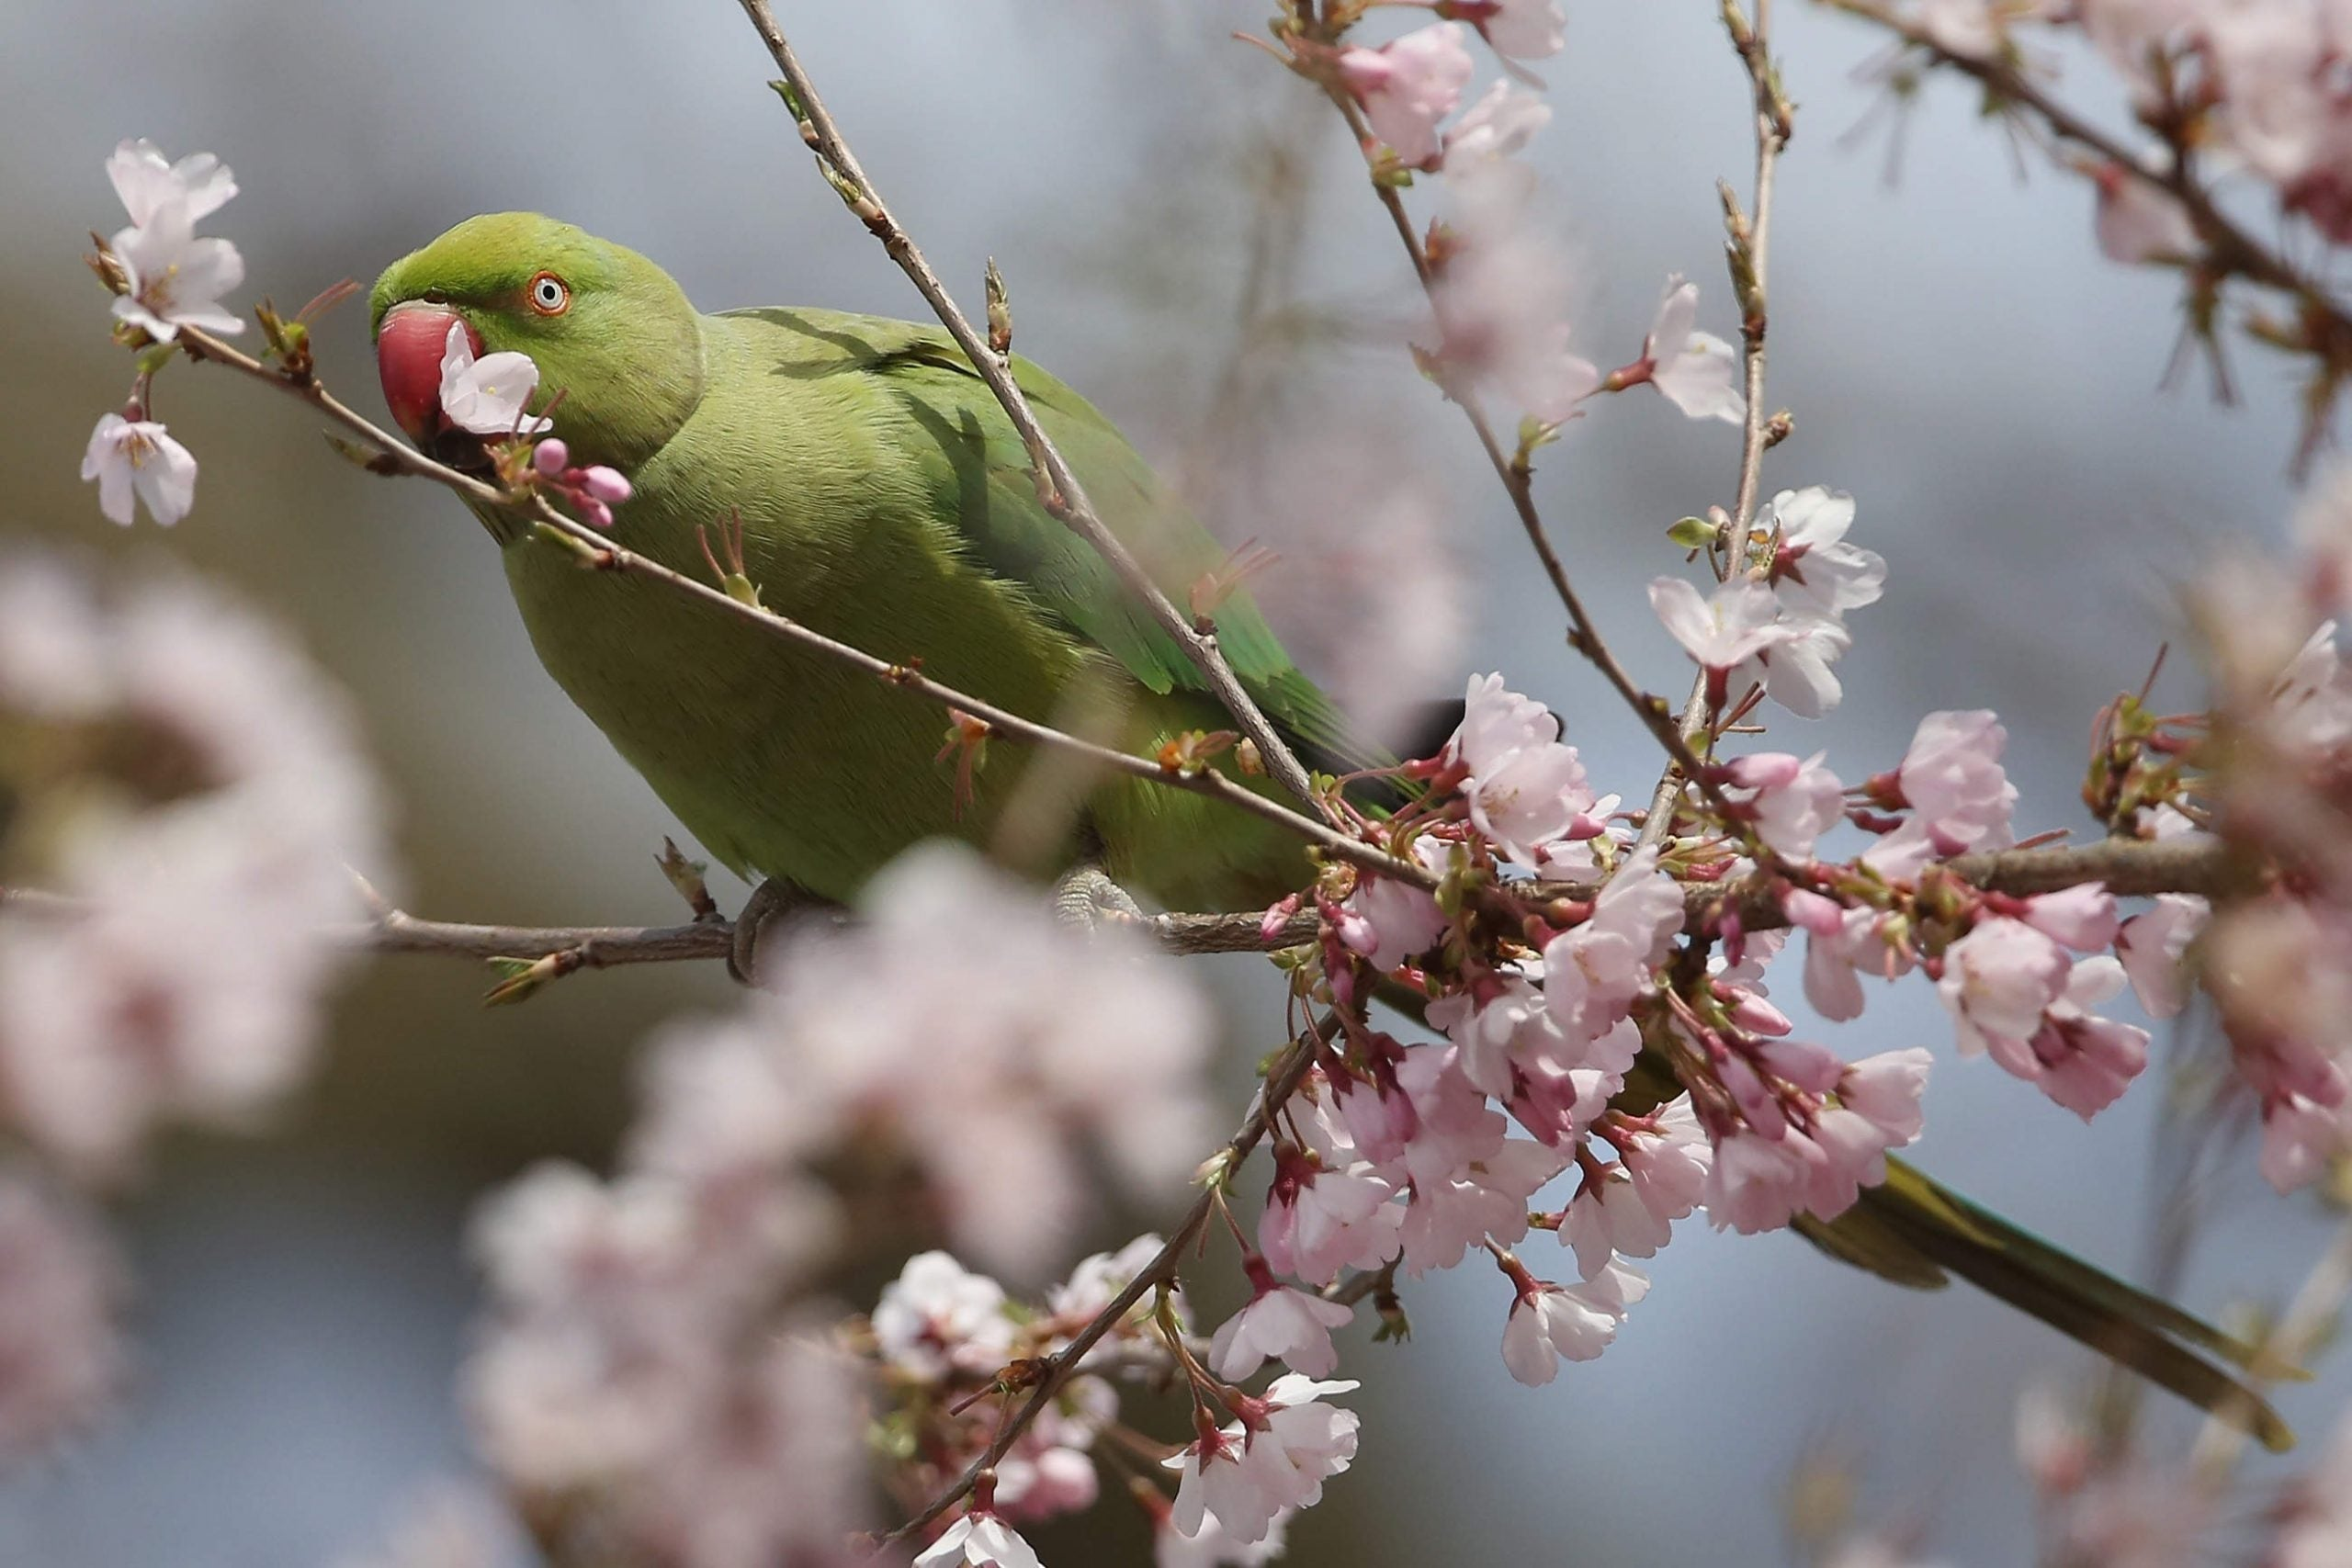 Ringnecks over Ramsgate: where did Britain's parrots come from?